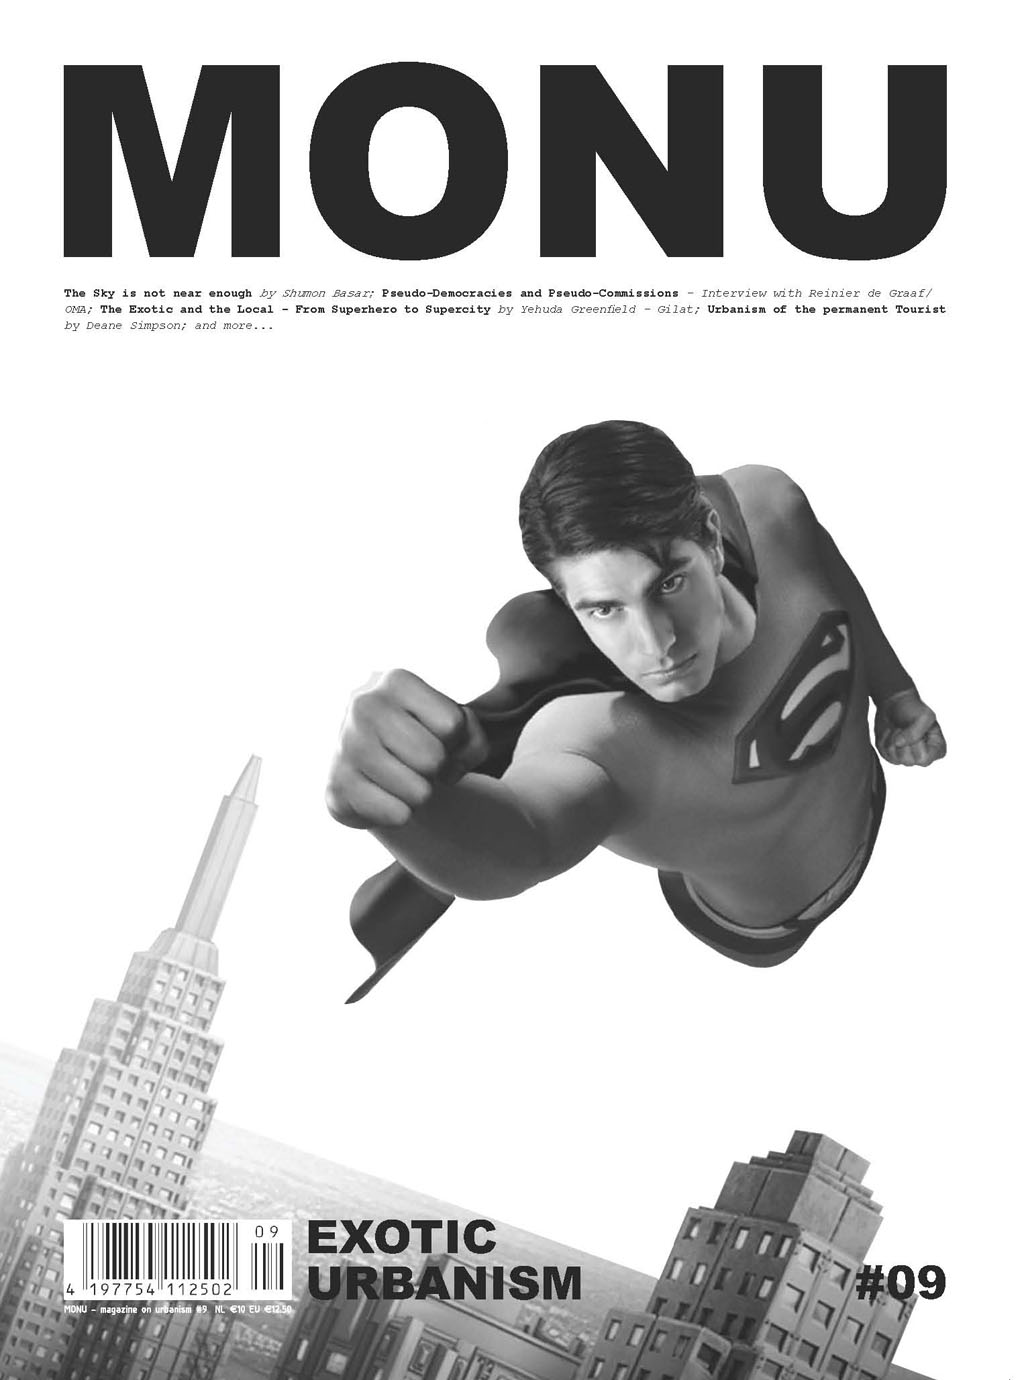 MONU magazine on urbanism 9 – Exotic Urbanism